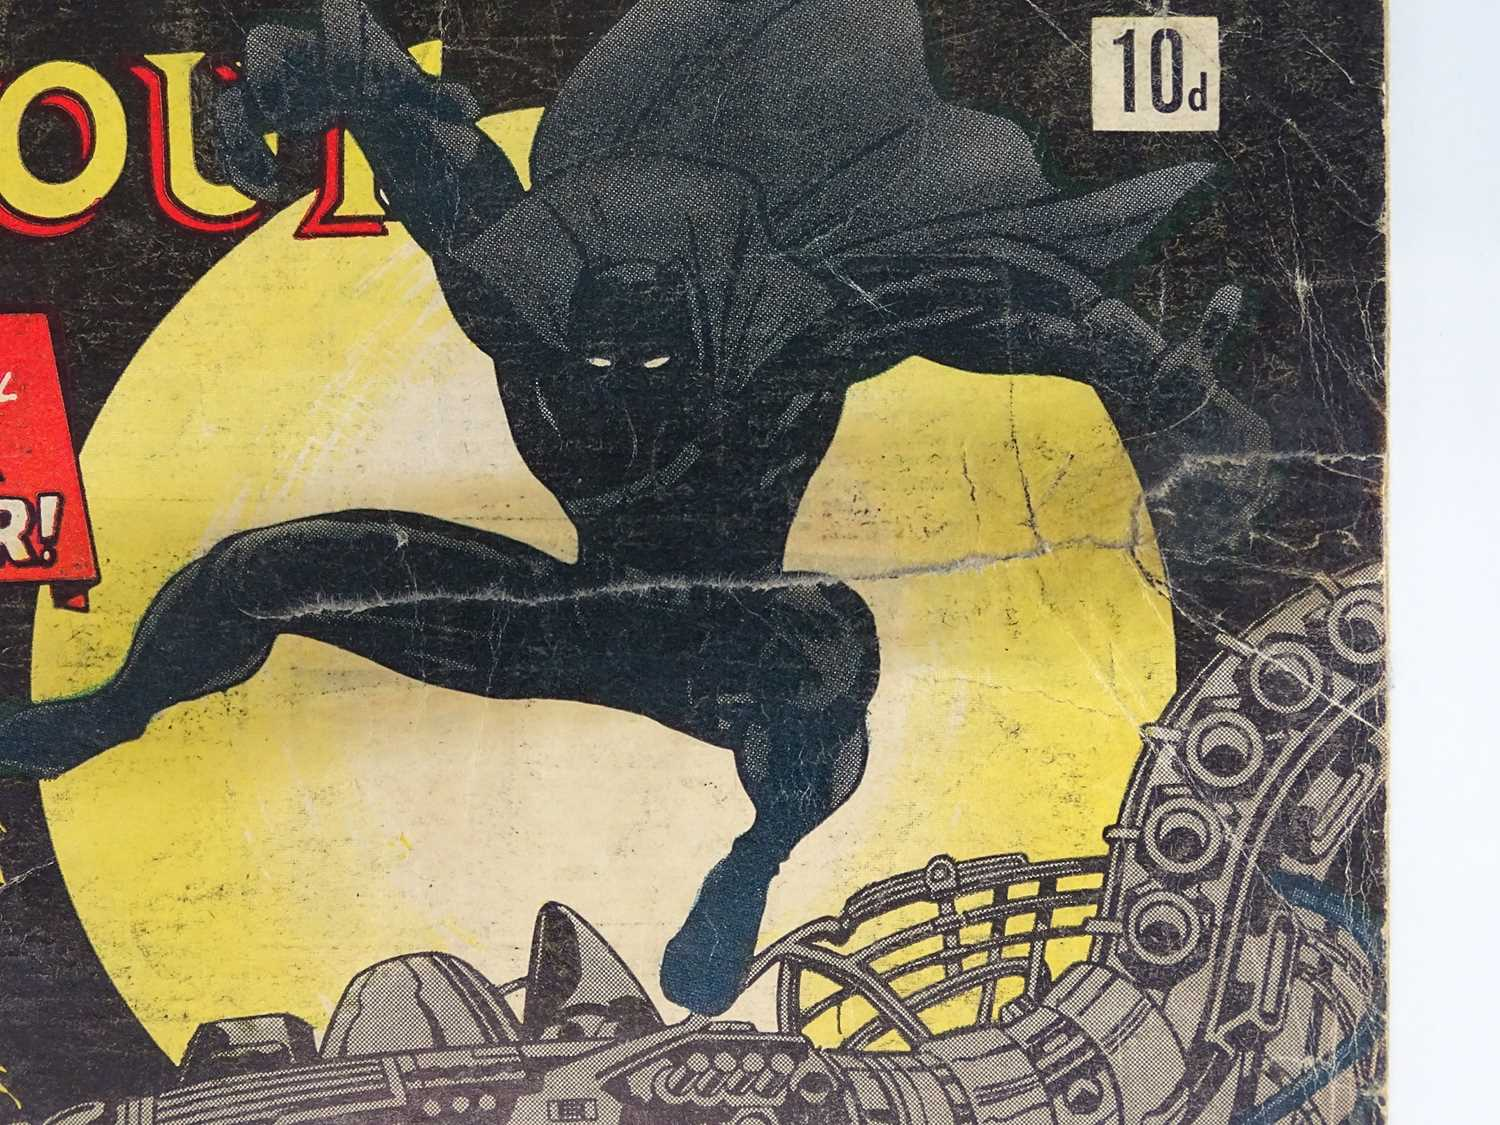 FANTASTIC FOUR #52 (1966 - MARVEL - UK Price Variant) - First appearance of Black Panther (one of - Image 2 of 10